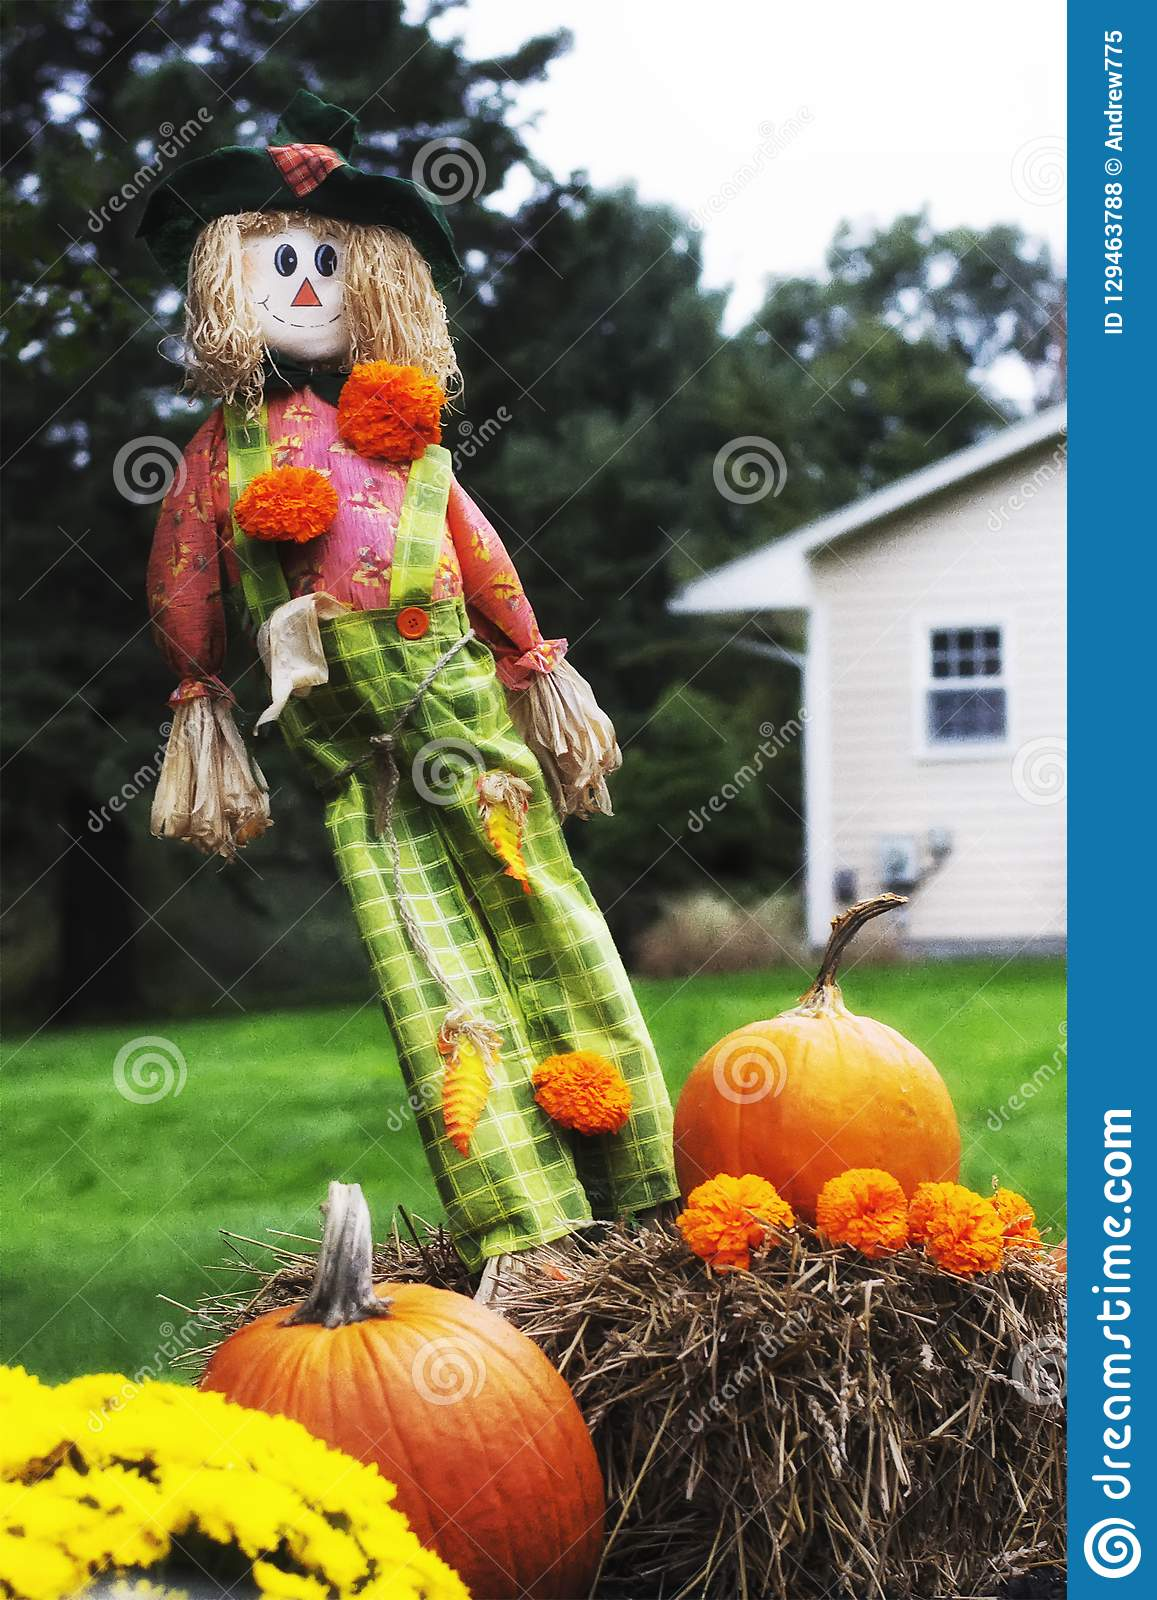 Fall Decorations Outside Stock Photo Image Of Autumn 129463788